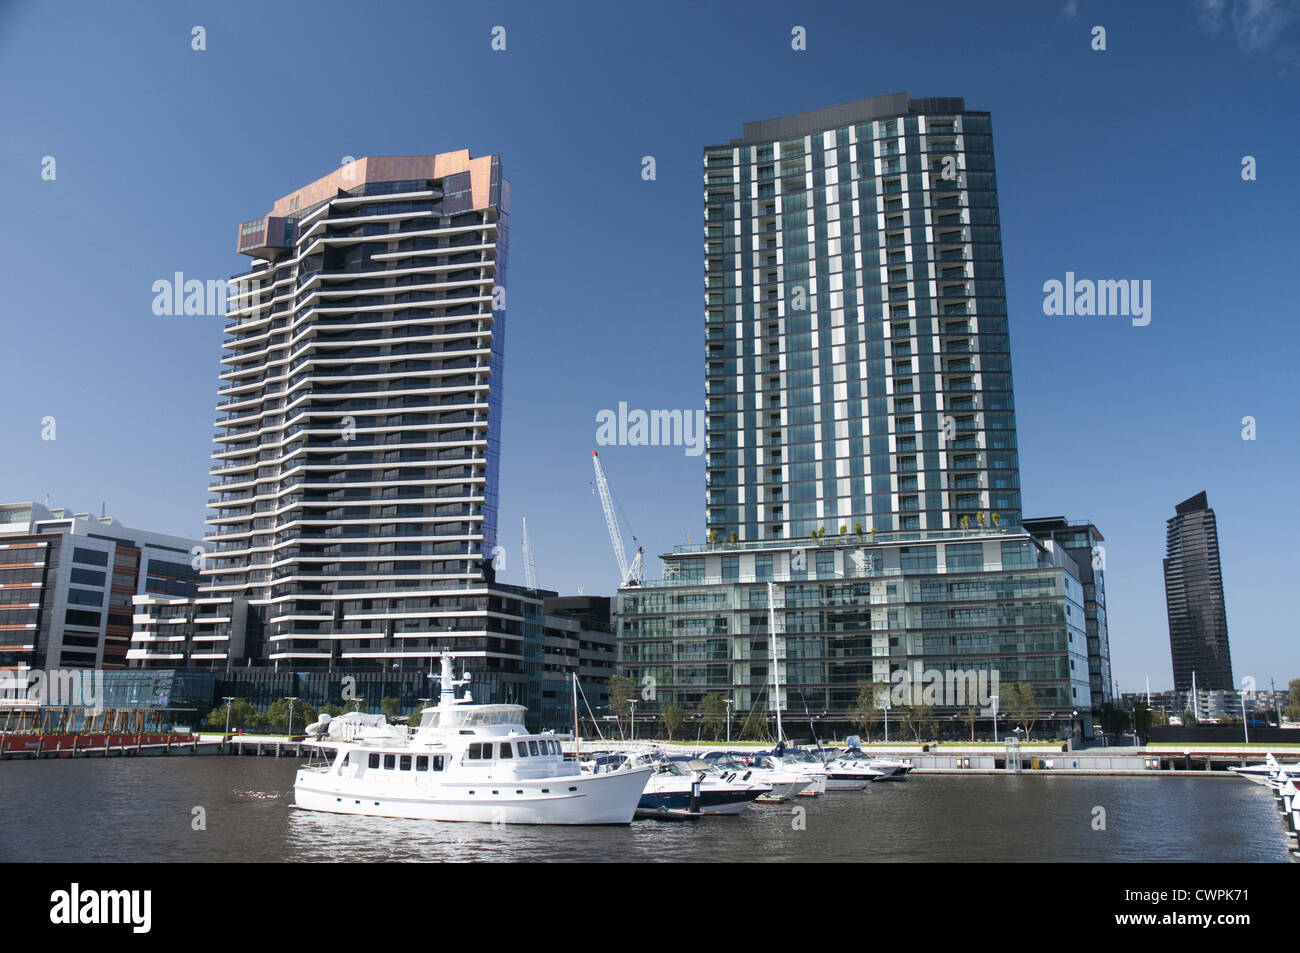 Docklands Apartments Imágenes De Stock & Docklands Apartments Fotos ...